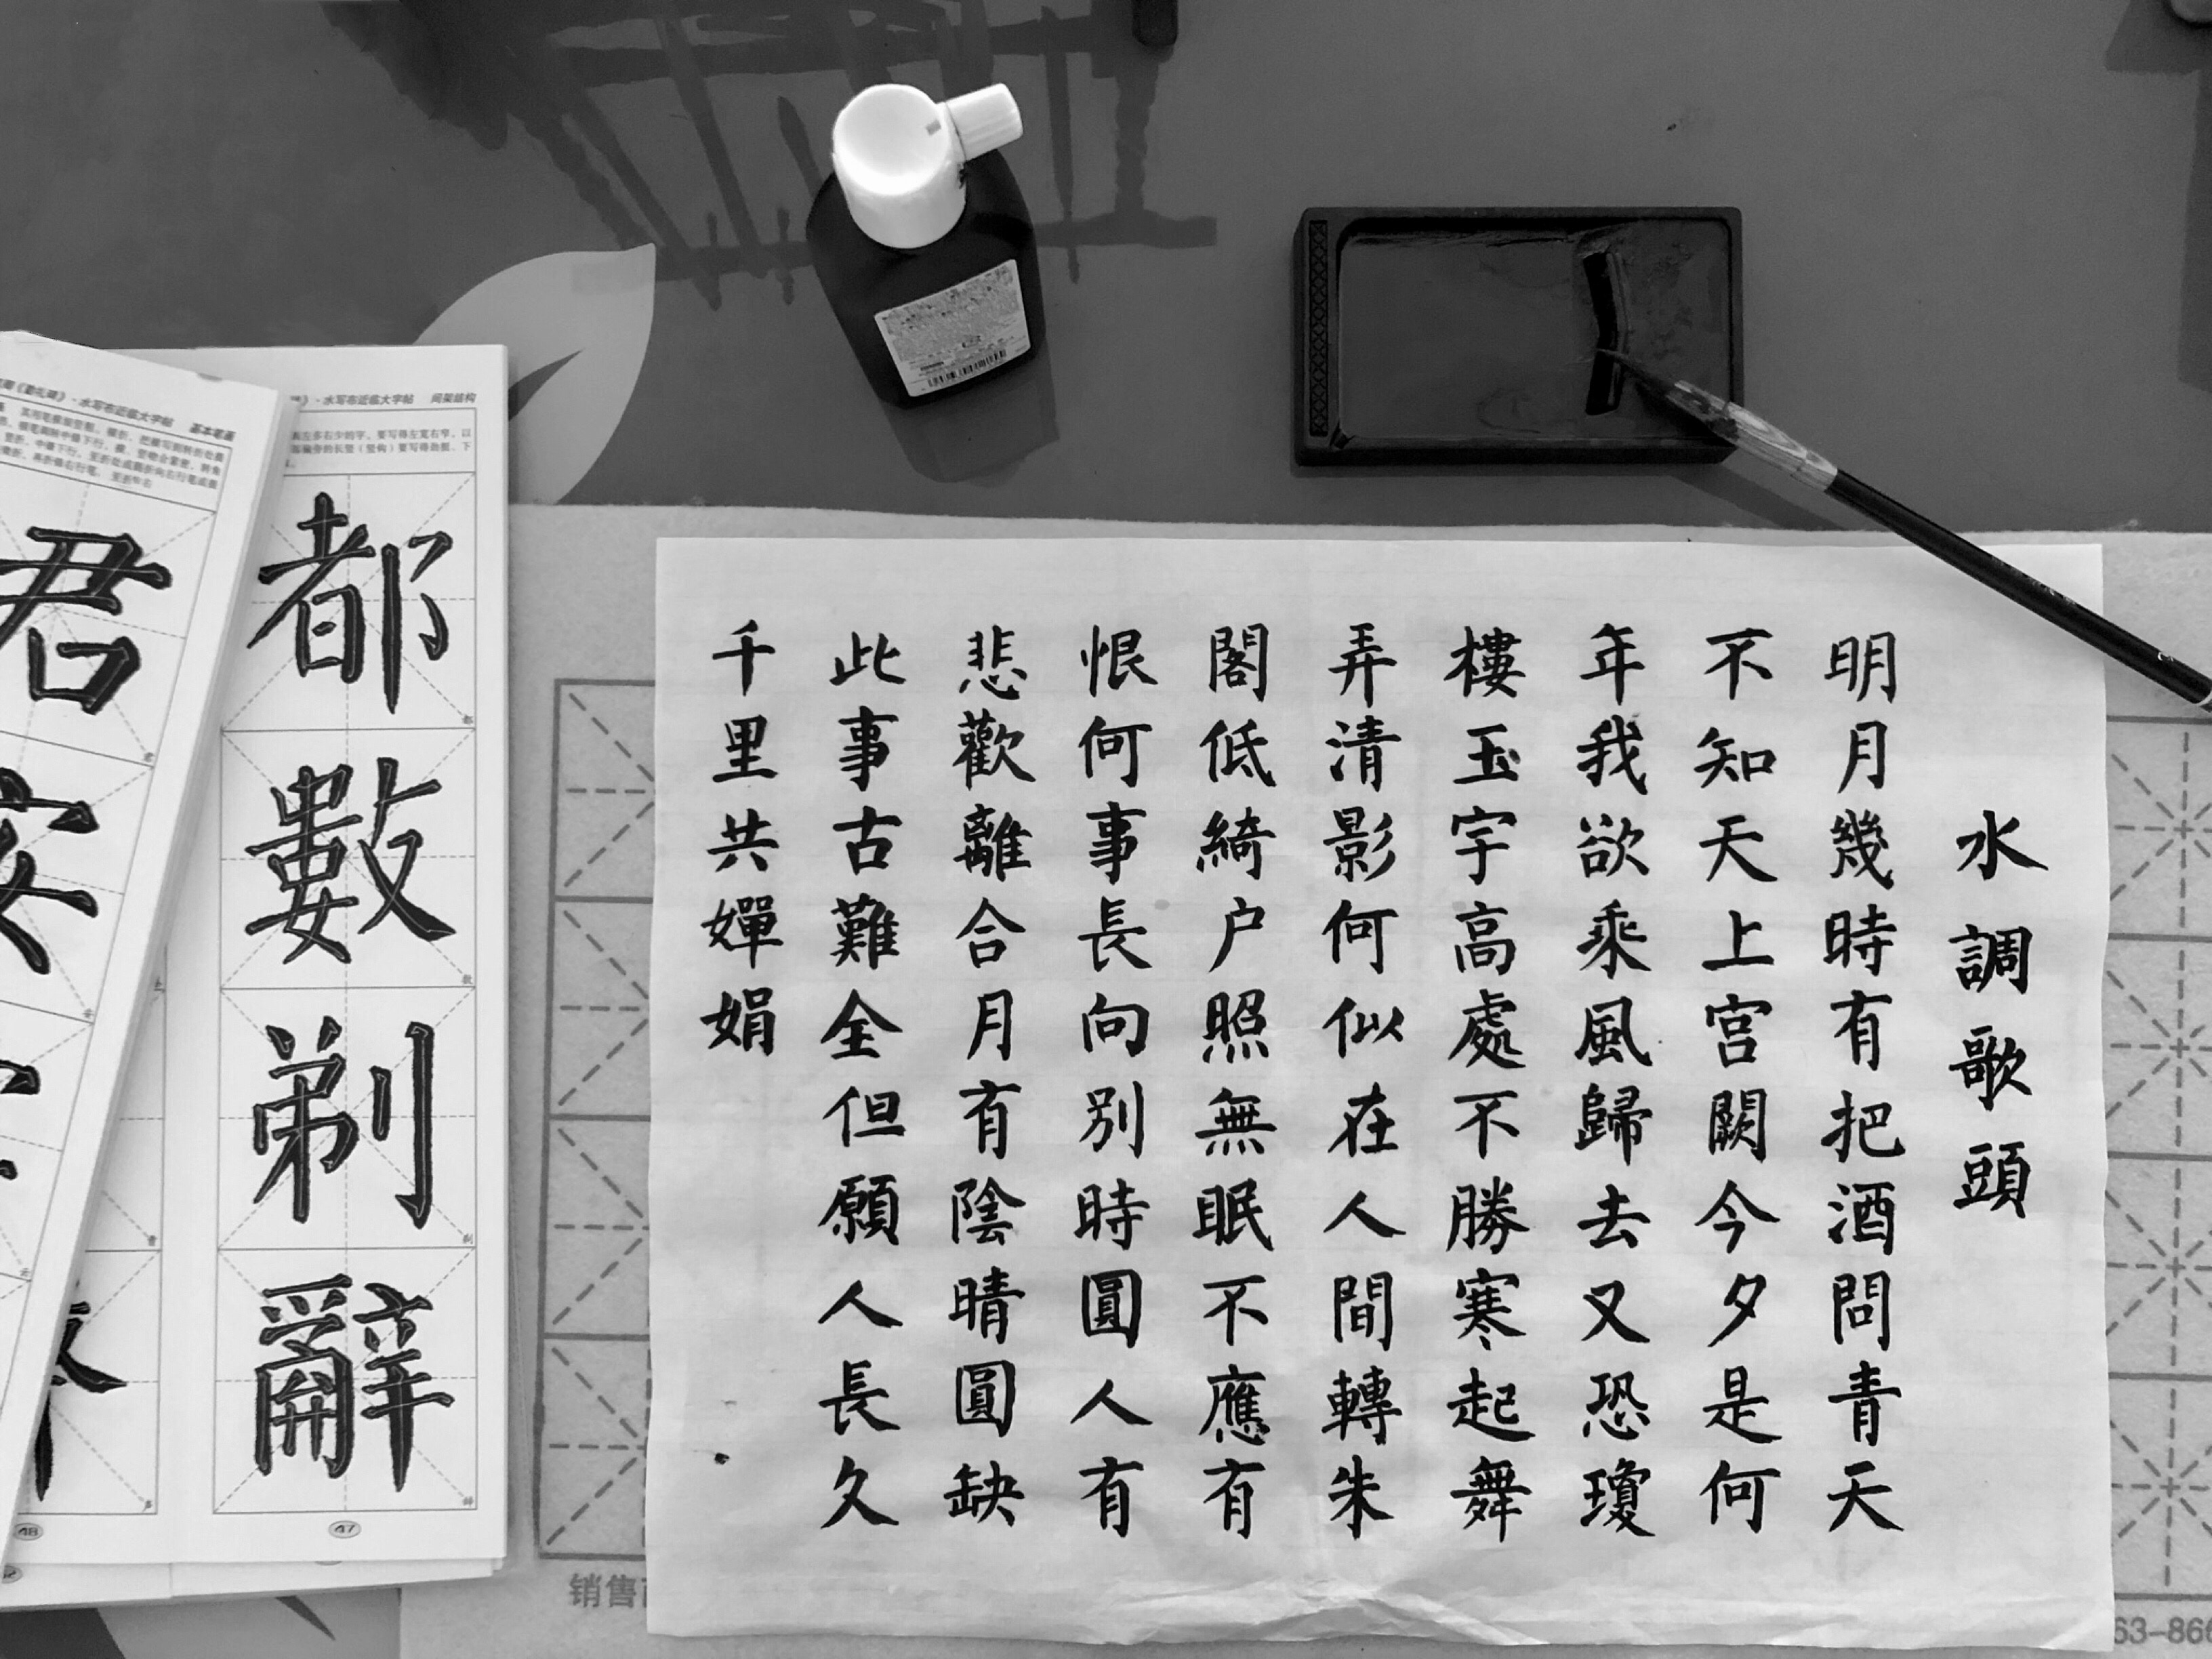 A calligraphy painting of kanji